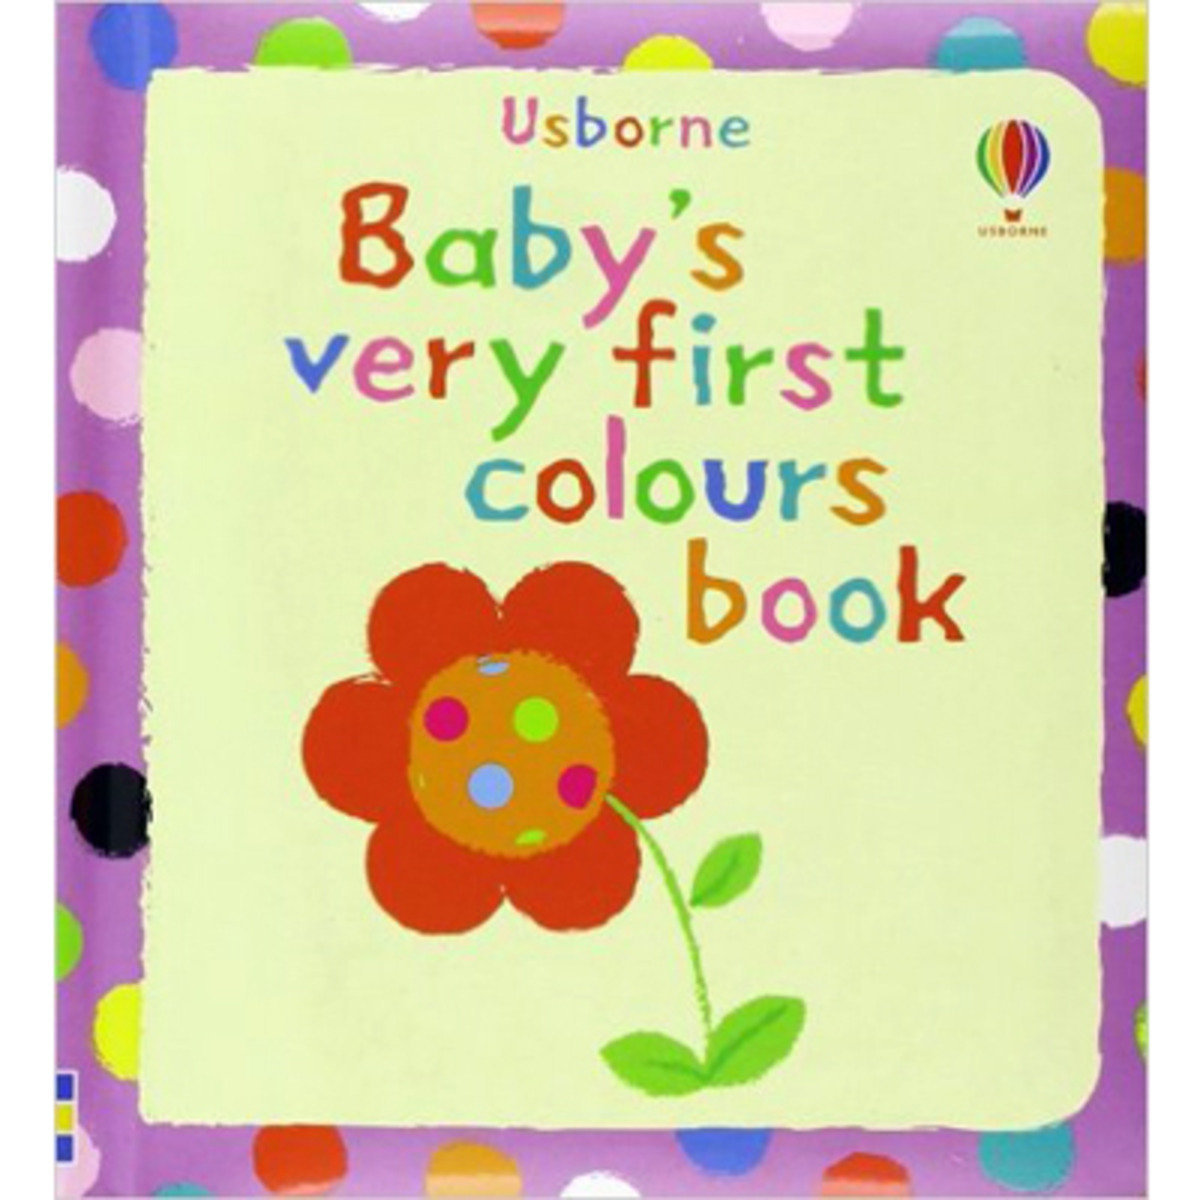 Baby's Very First Book of Colours